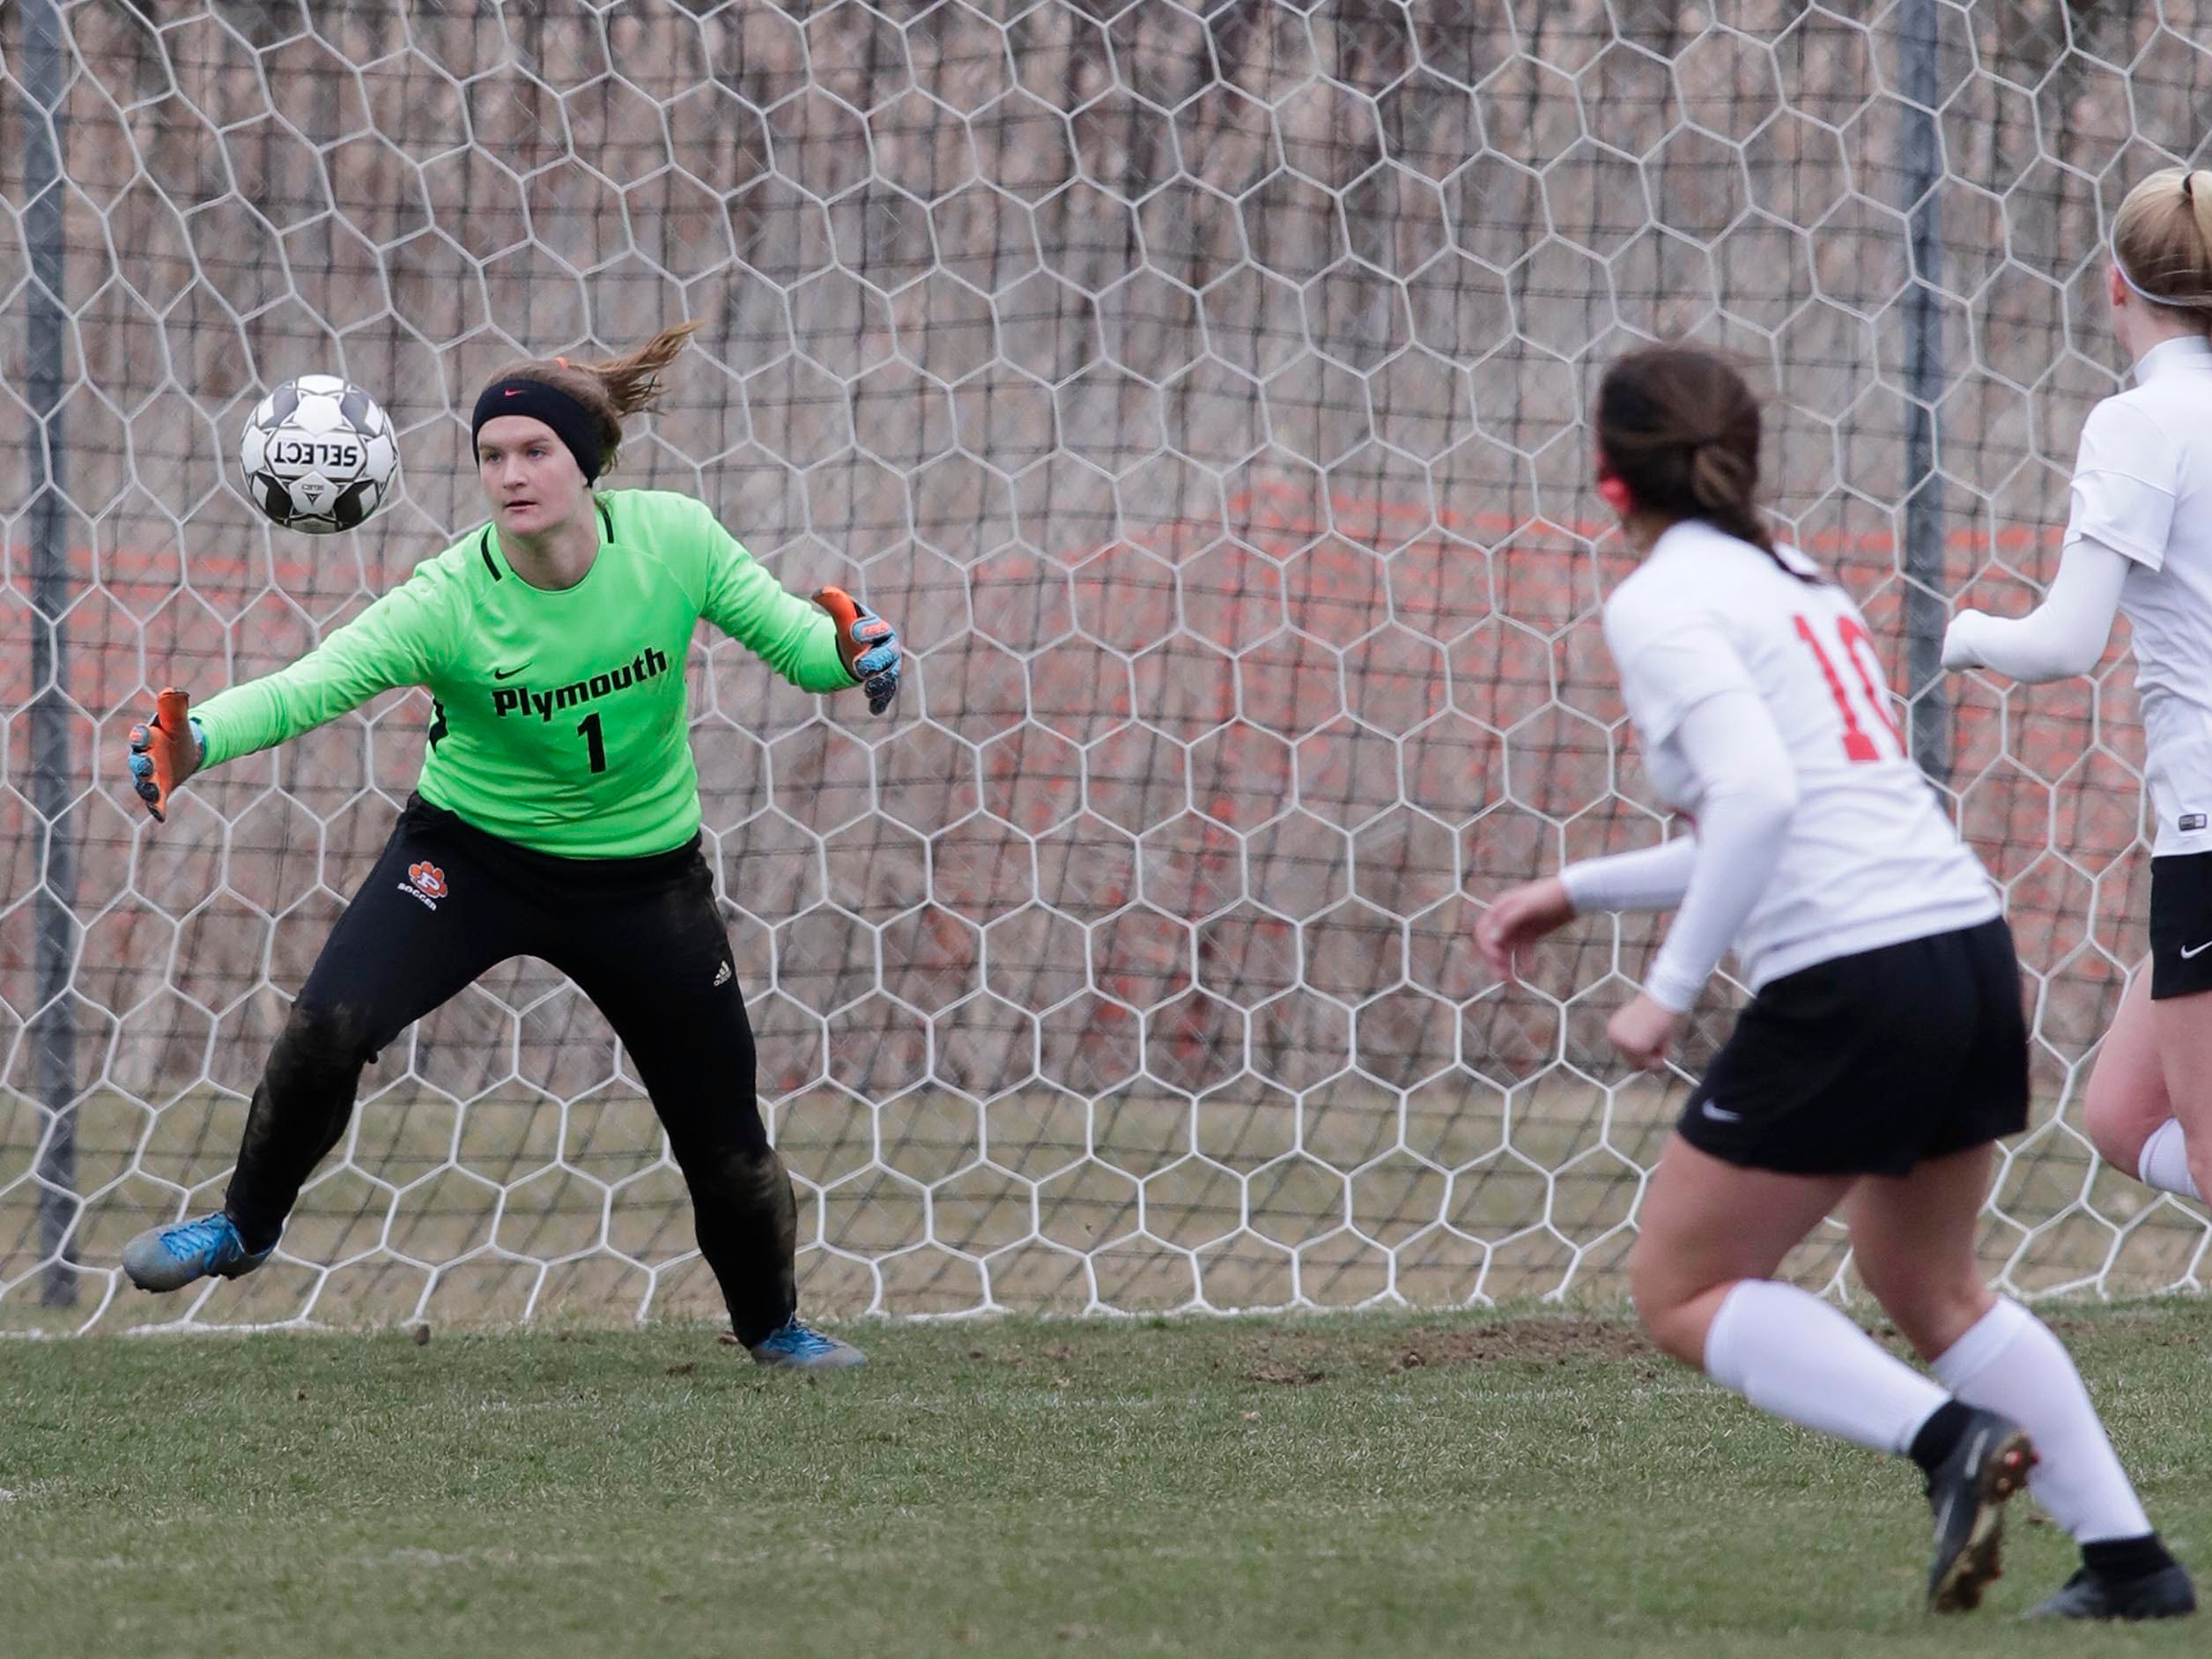 Plymouth goaltender Tess Huhn (1) aims to catch the ball against Kimberly, Saturday, April 13, 2019, in Plymouth, Wis.